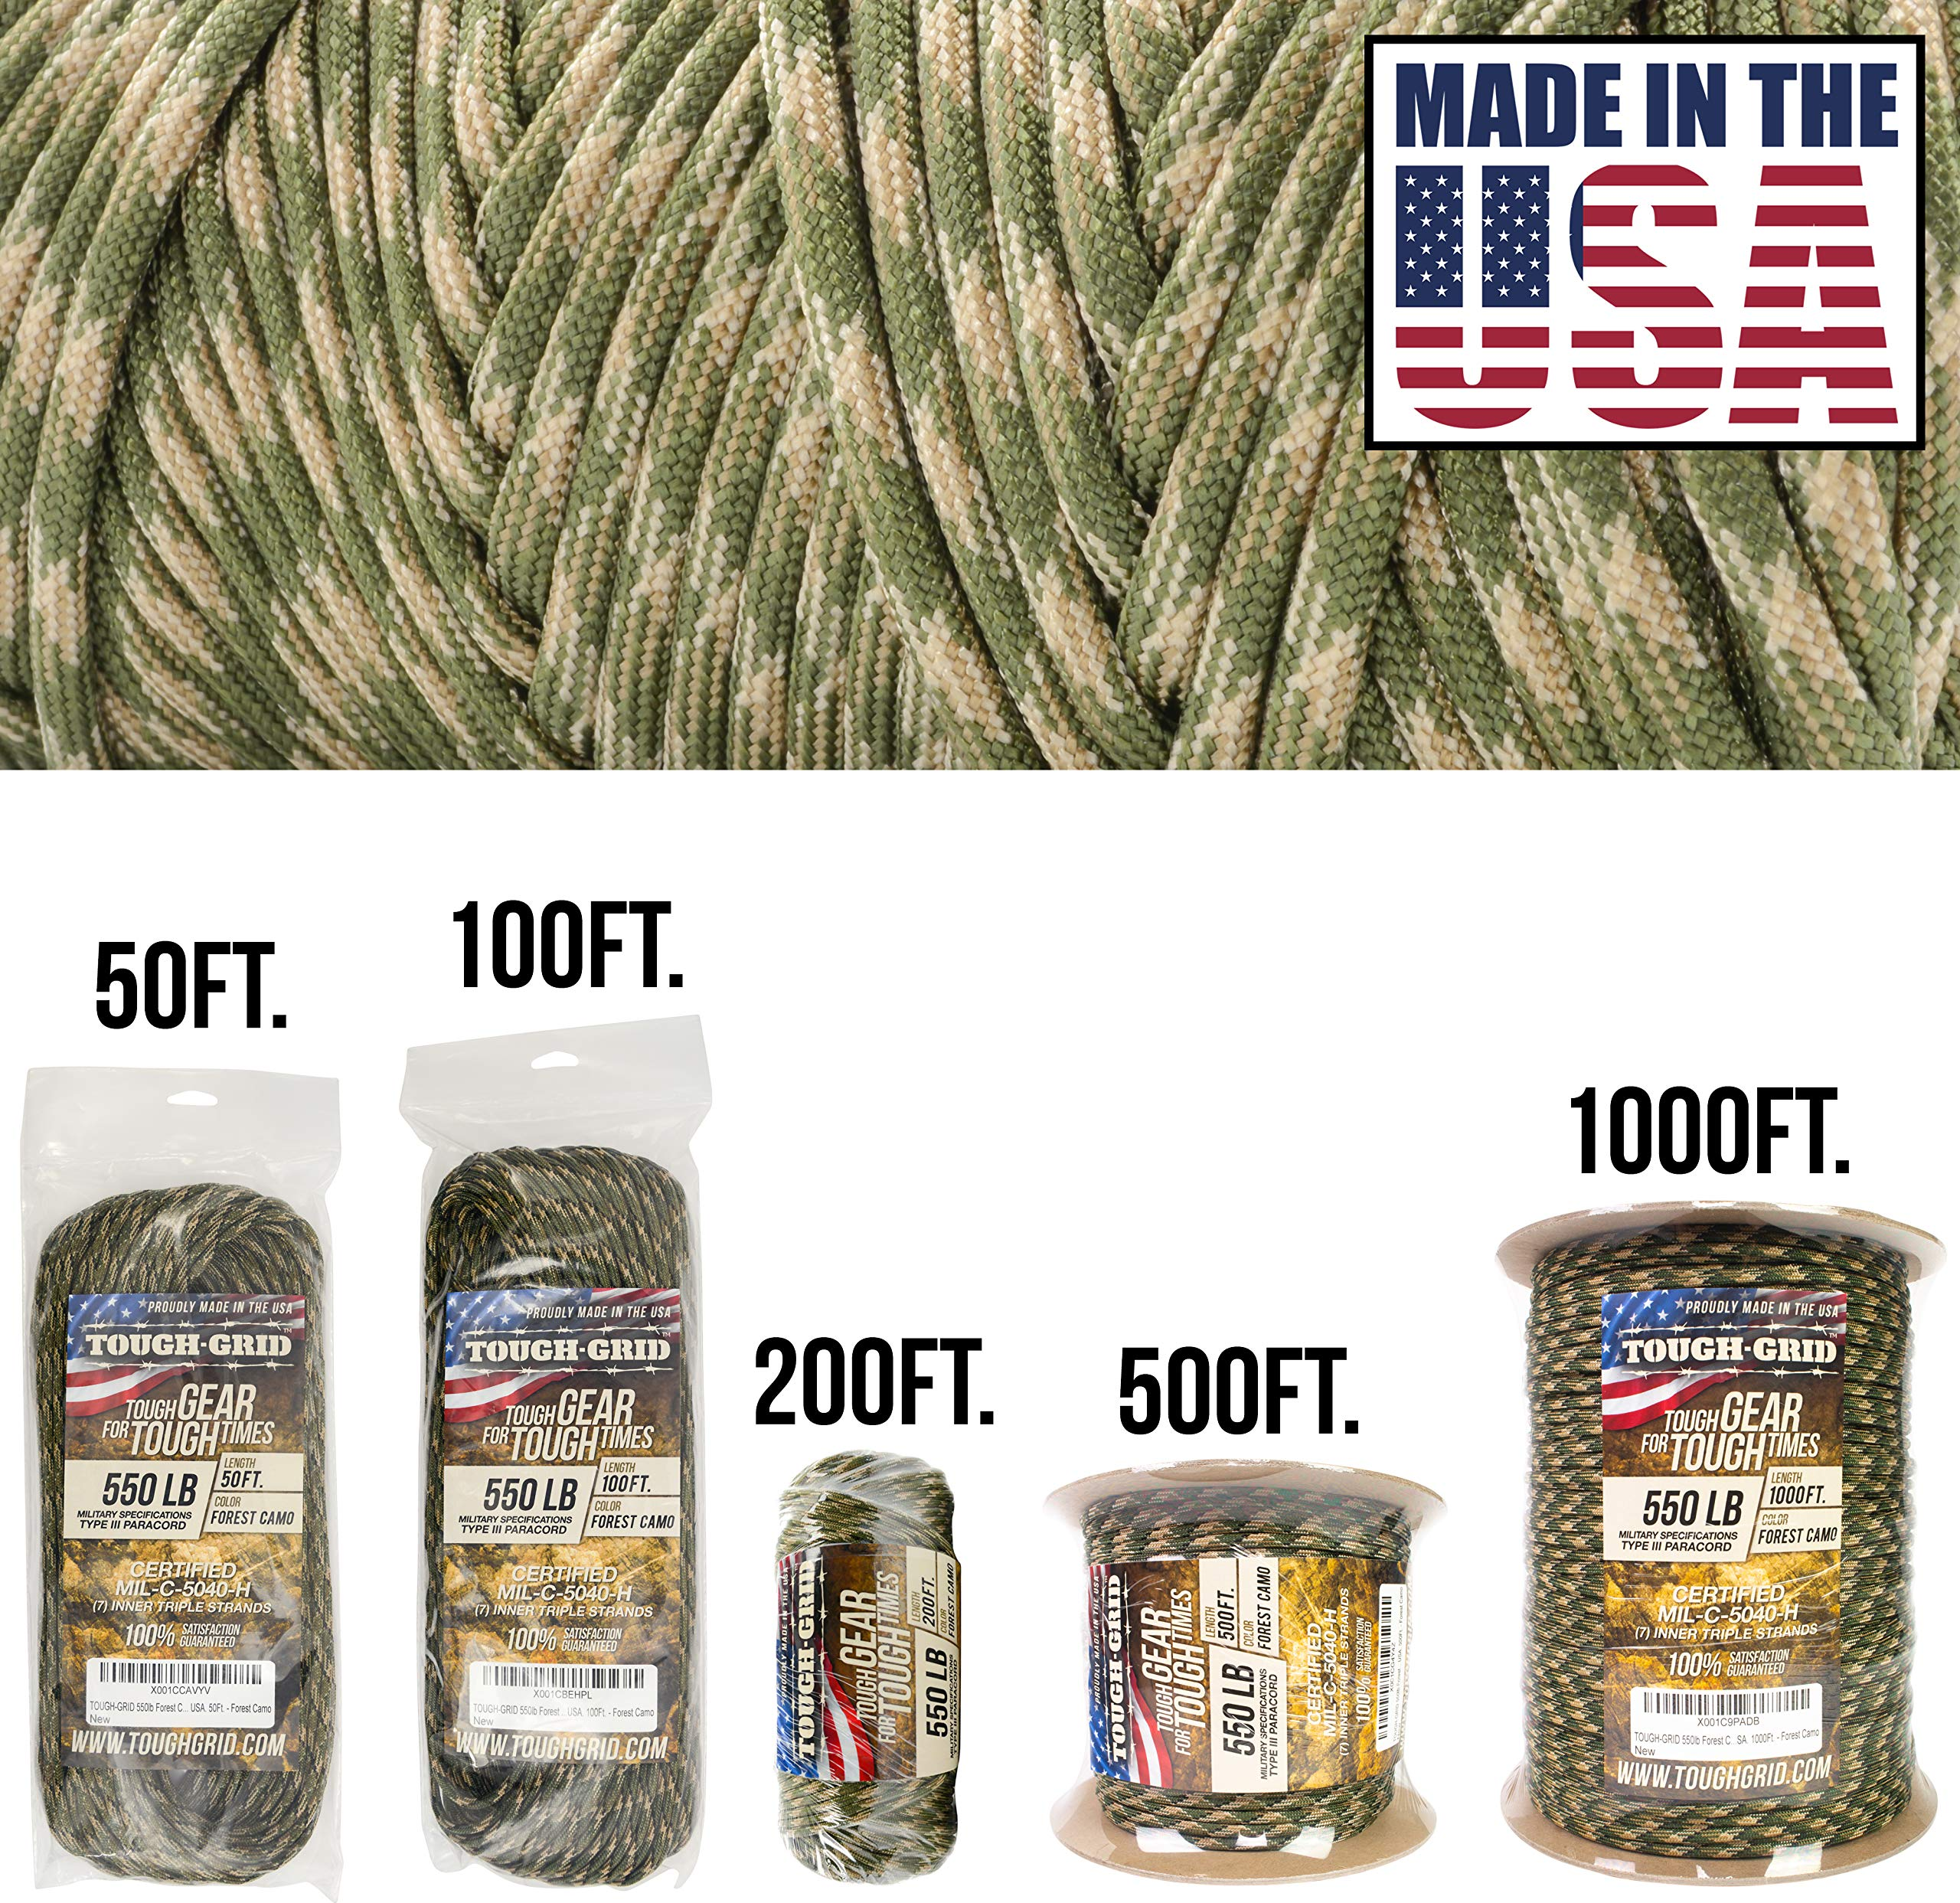 TOUGH-GRID 550lb Forest Camo Paracord/Parachute Cord - 100% Nylon Genuine Mil-Spec Type III Paracord Used by The US Military - (MIL-C-5040-H) - Made in The USA. 1000Ft. - Forest Camo by TOUGH-GRID